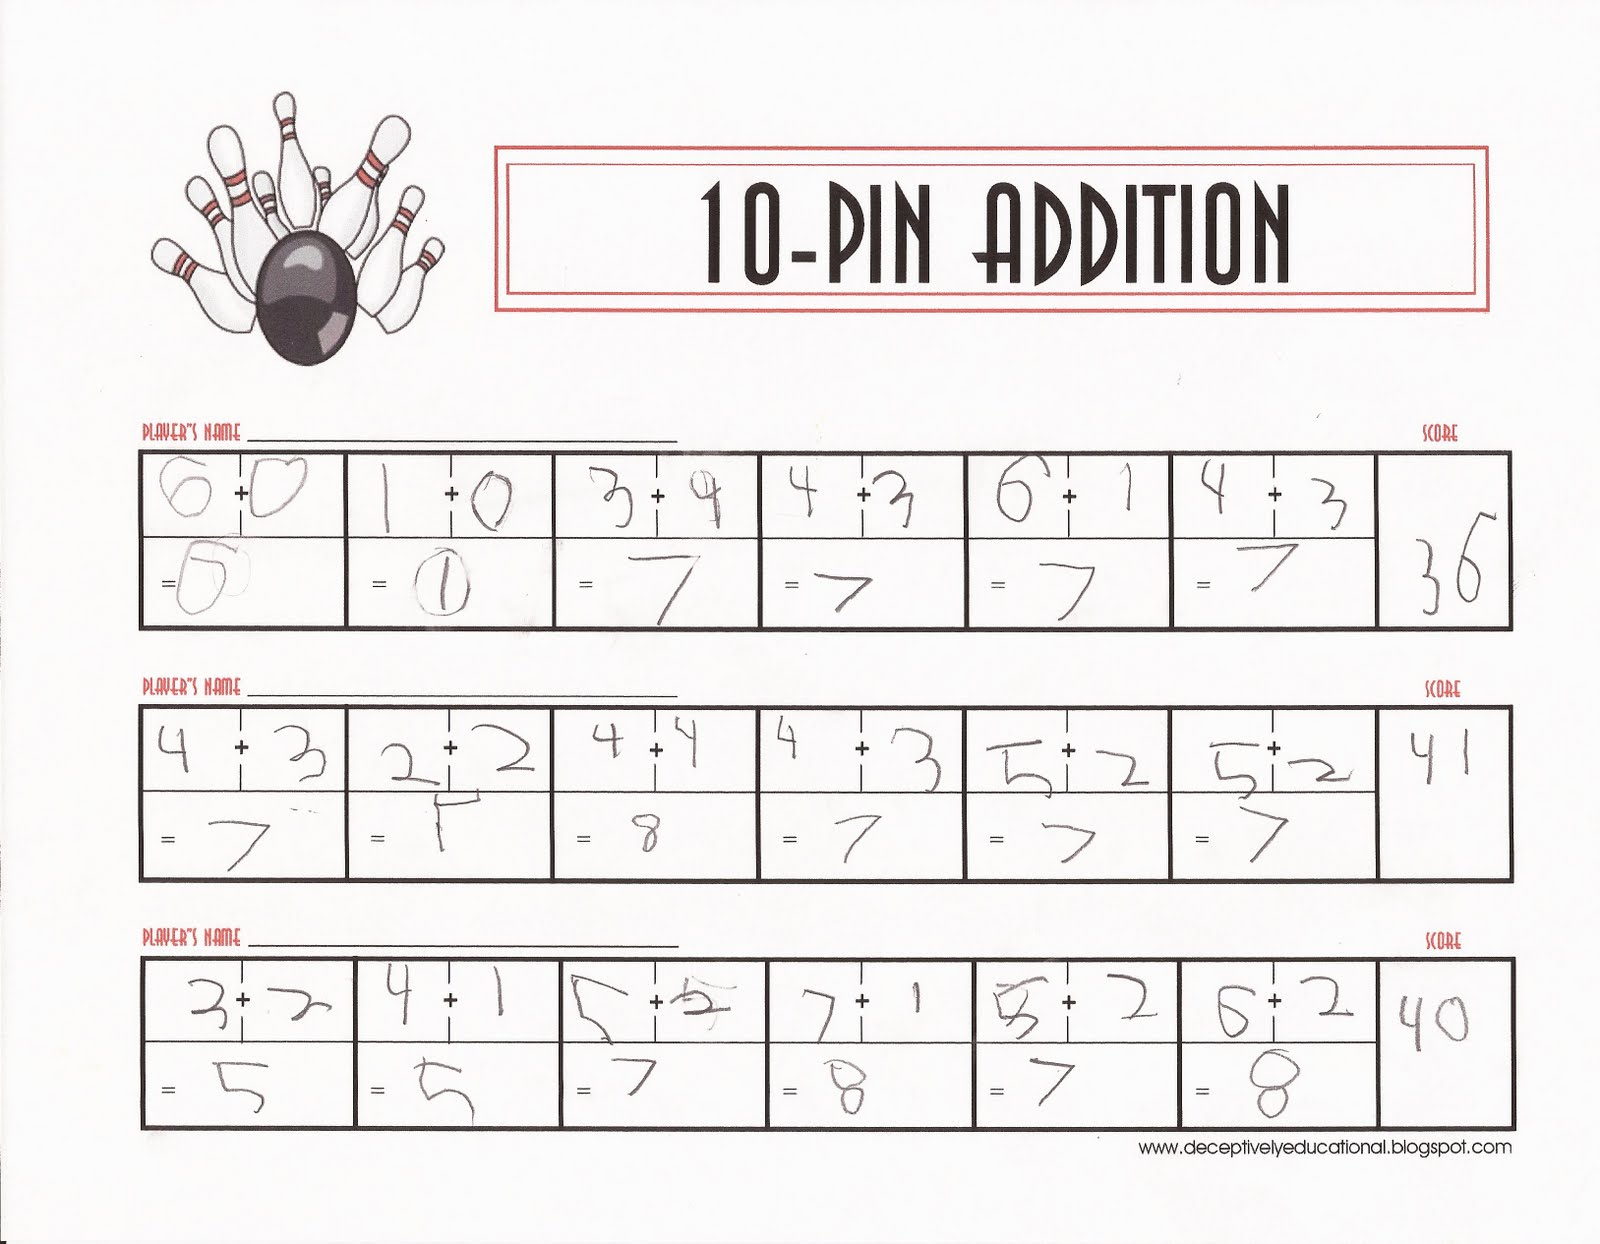 Bowling Score Sheet | Relentlessly Fun Deceptively Educational 10 Pin Addition Math